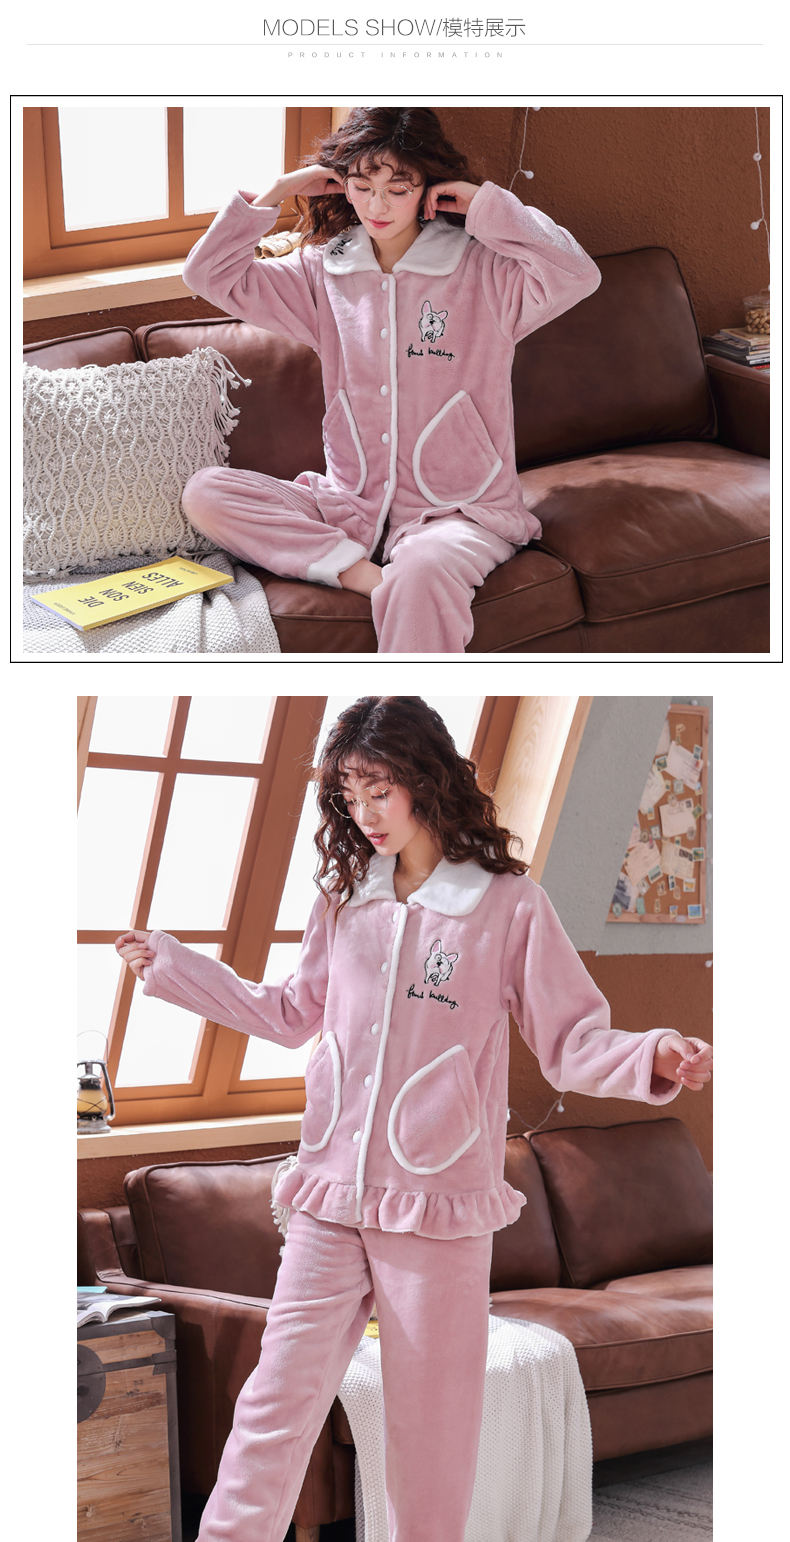 Plus Size 3XL 4XL 5XL Pajamas for women 2019 Winter Thicken Flannel pyjamas Long-sleeve lovely Sleepwear Coral Fleece Nightgowns 156